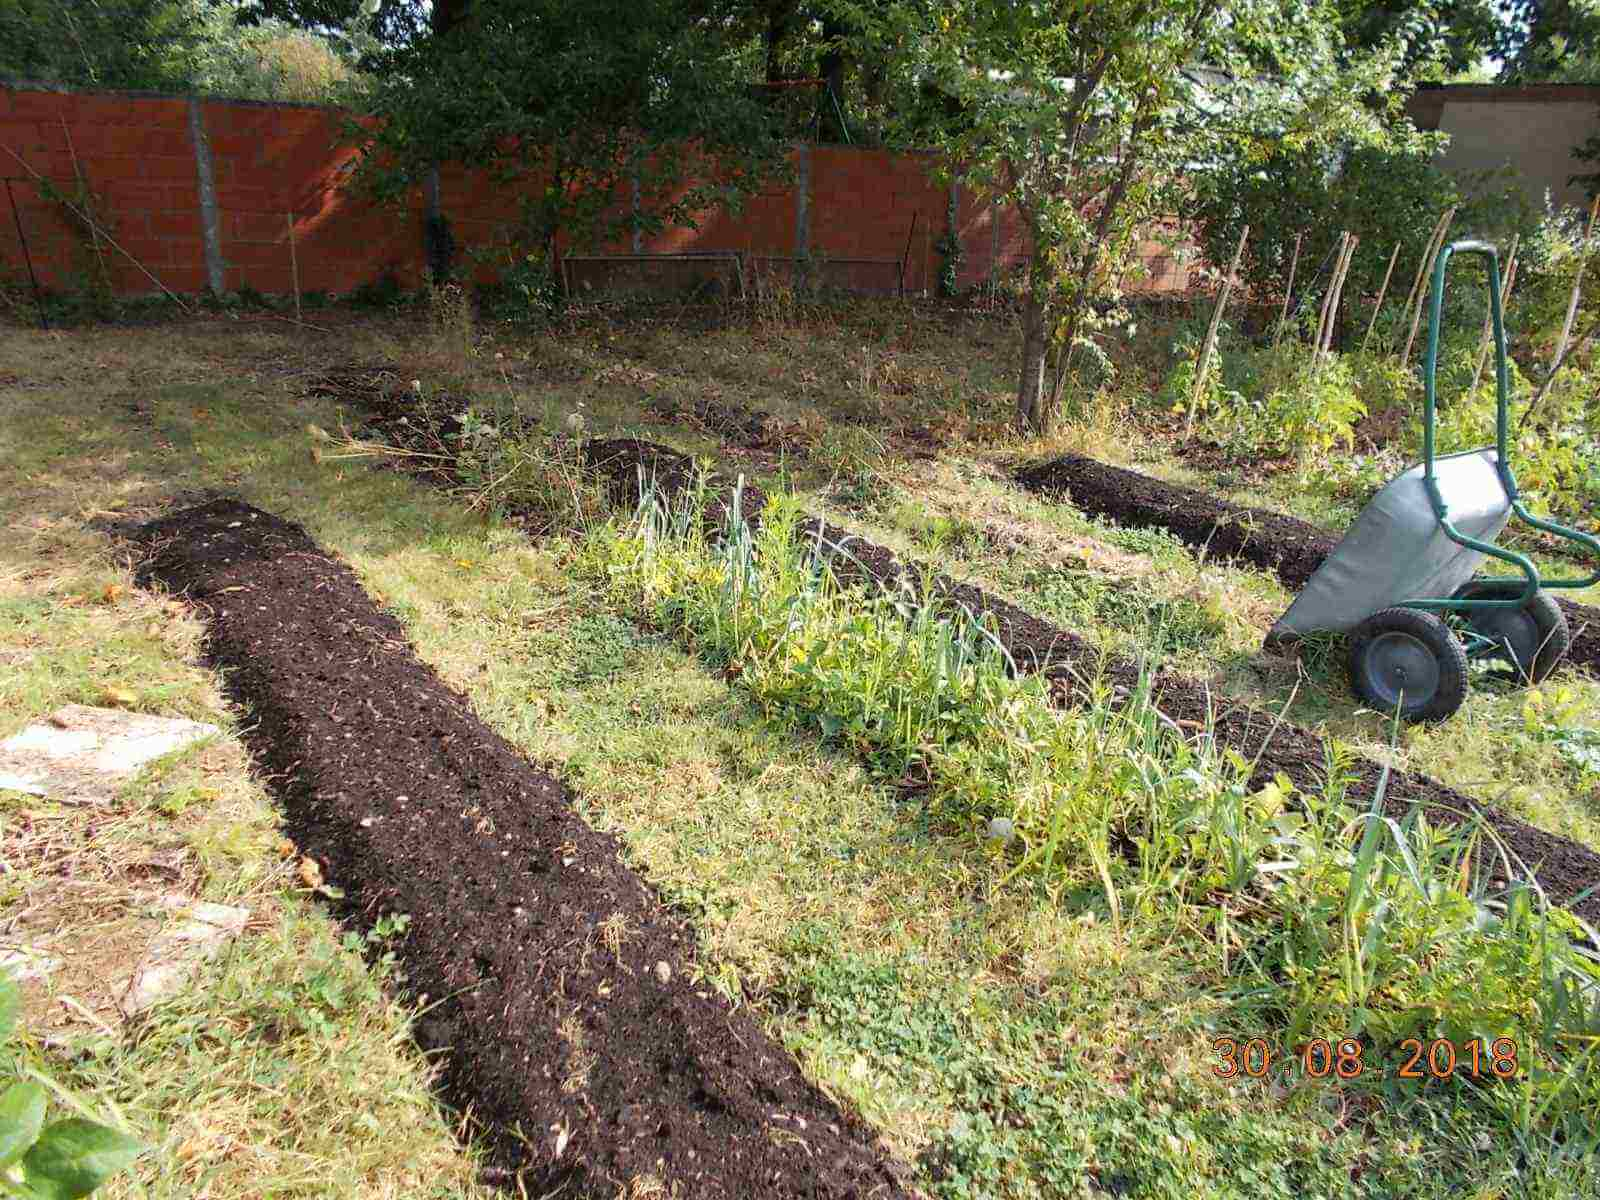 Analyse pollution jardin potager, arboretum permaculture